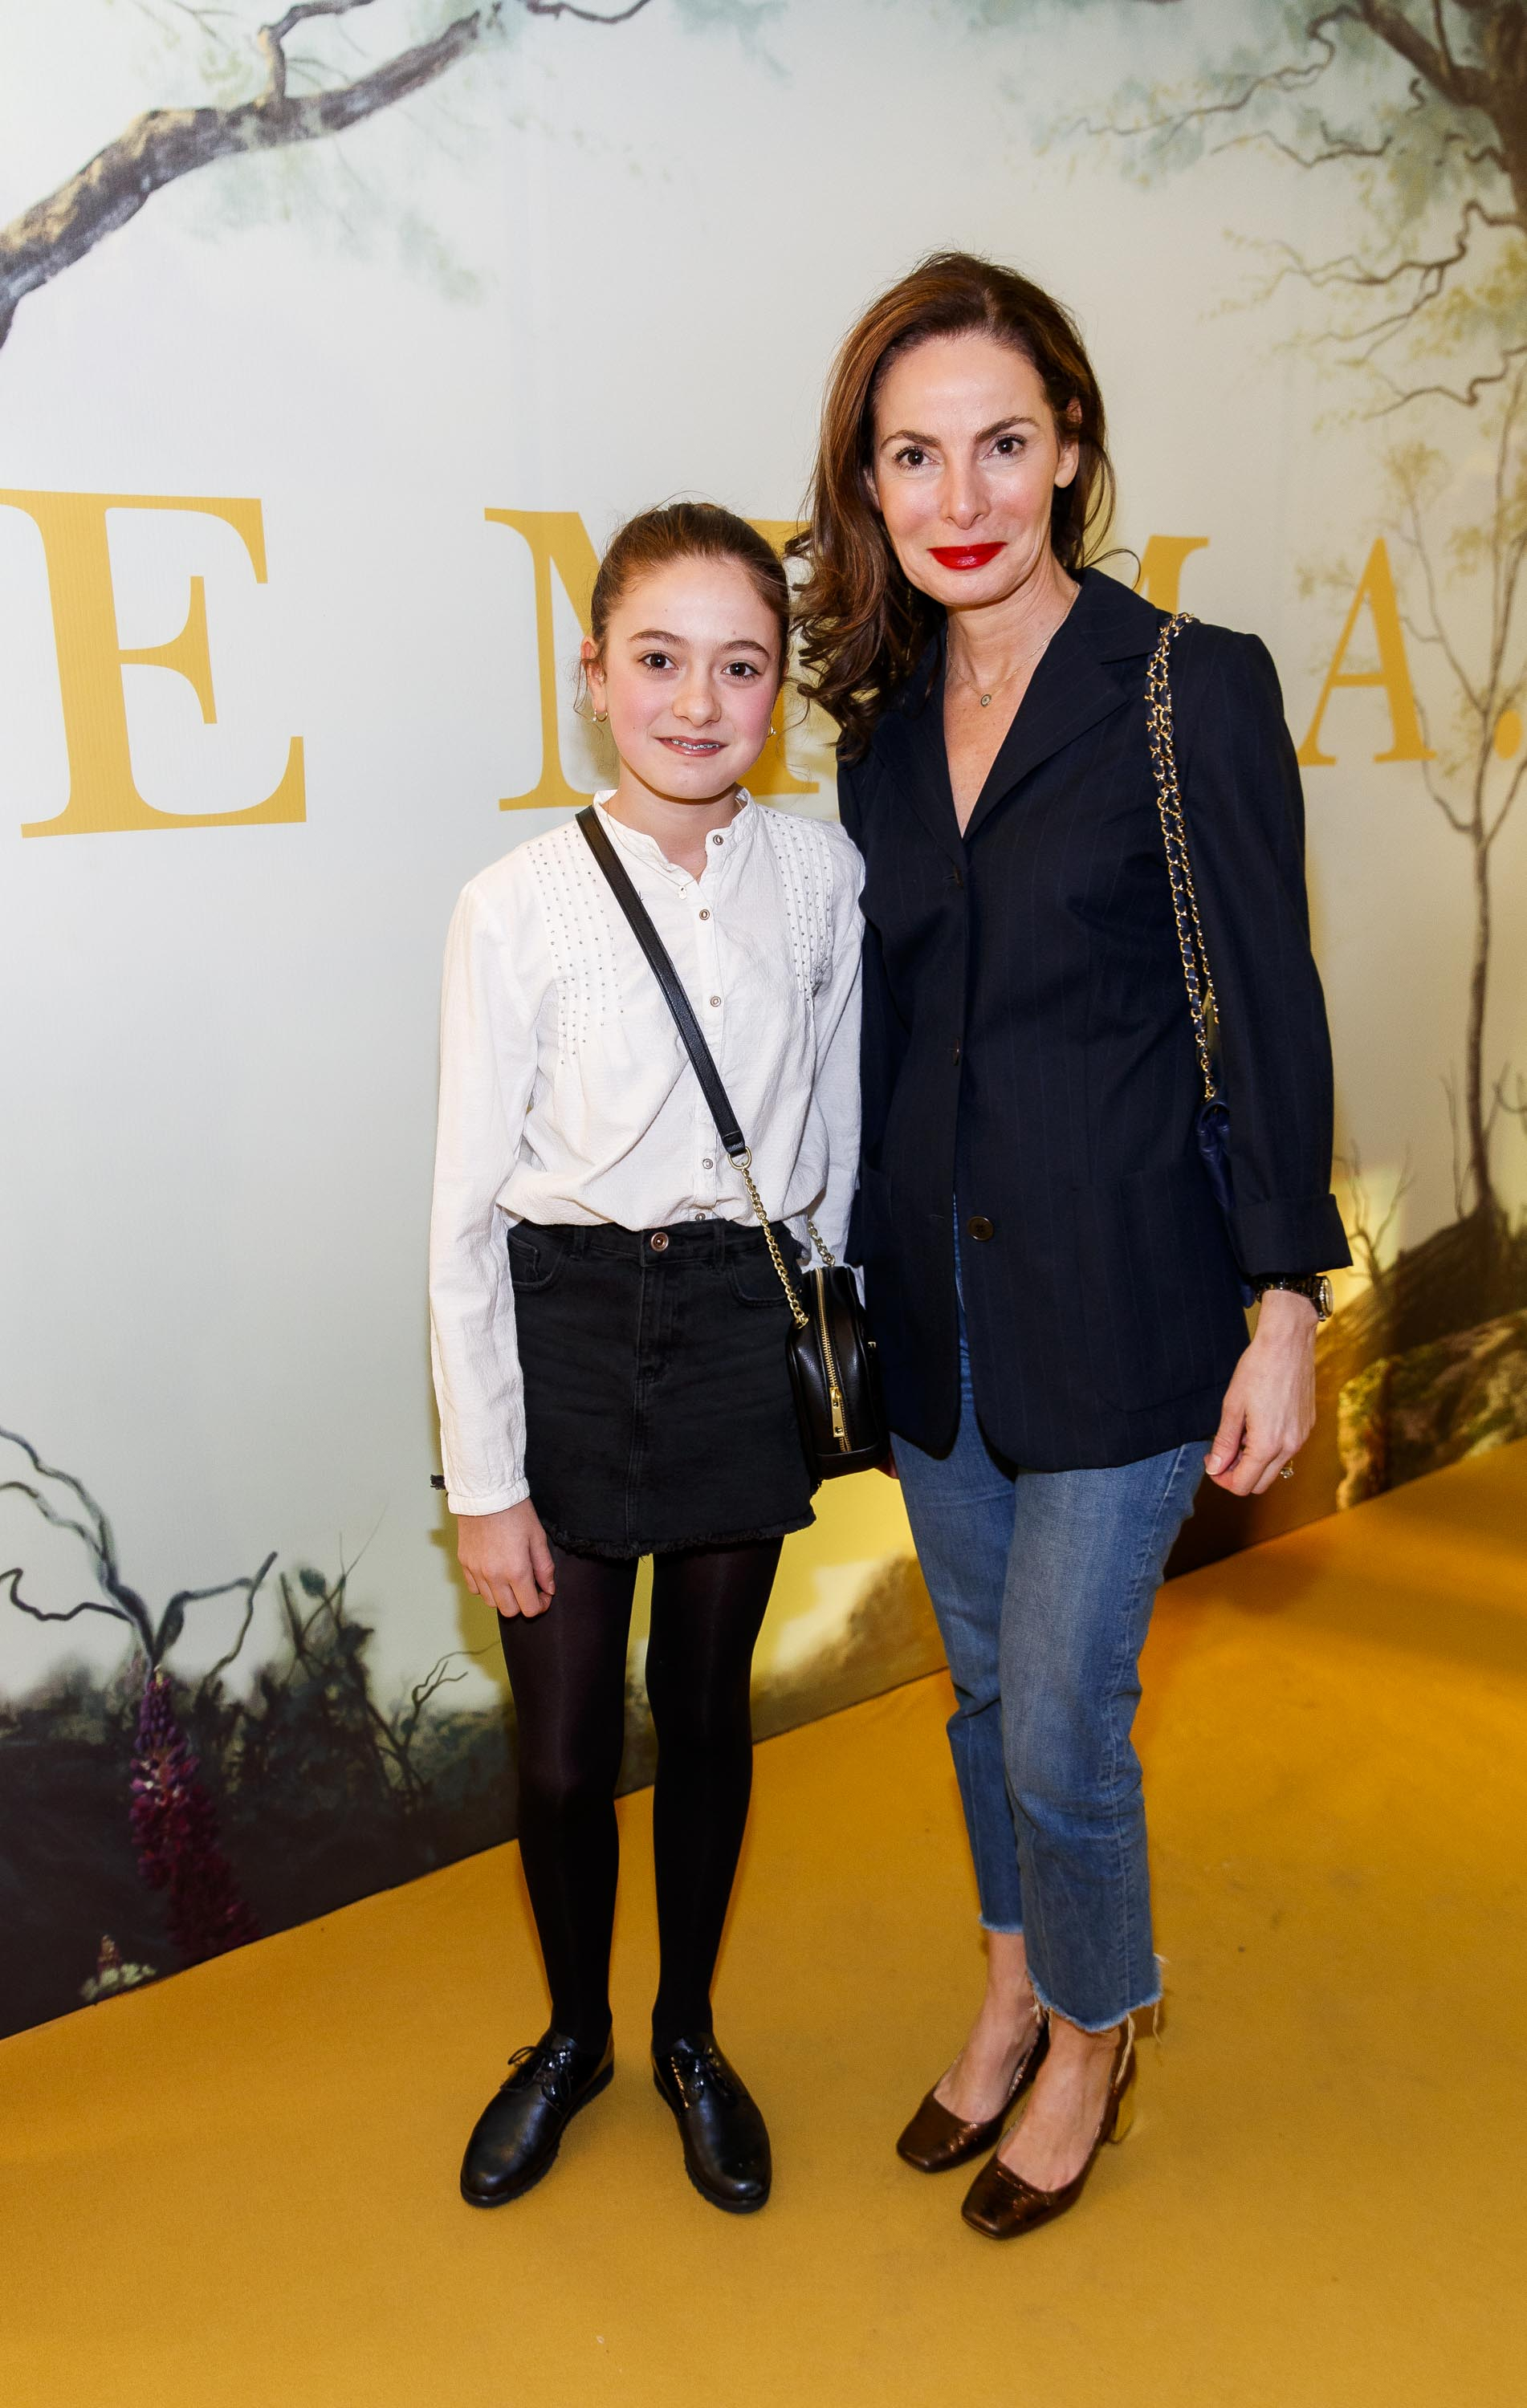 Melia Sleiman-Purdy (12) and Caroline Sleiman pictured at a special preview screening of EMMA, a delicious new adaptation of Jane Austen's beloved comedy, at Light House Cinema, Dublin Picture Andres Poveda